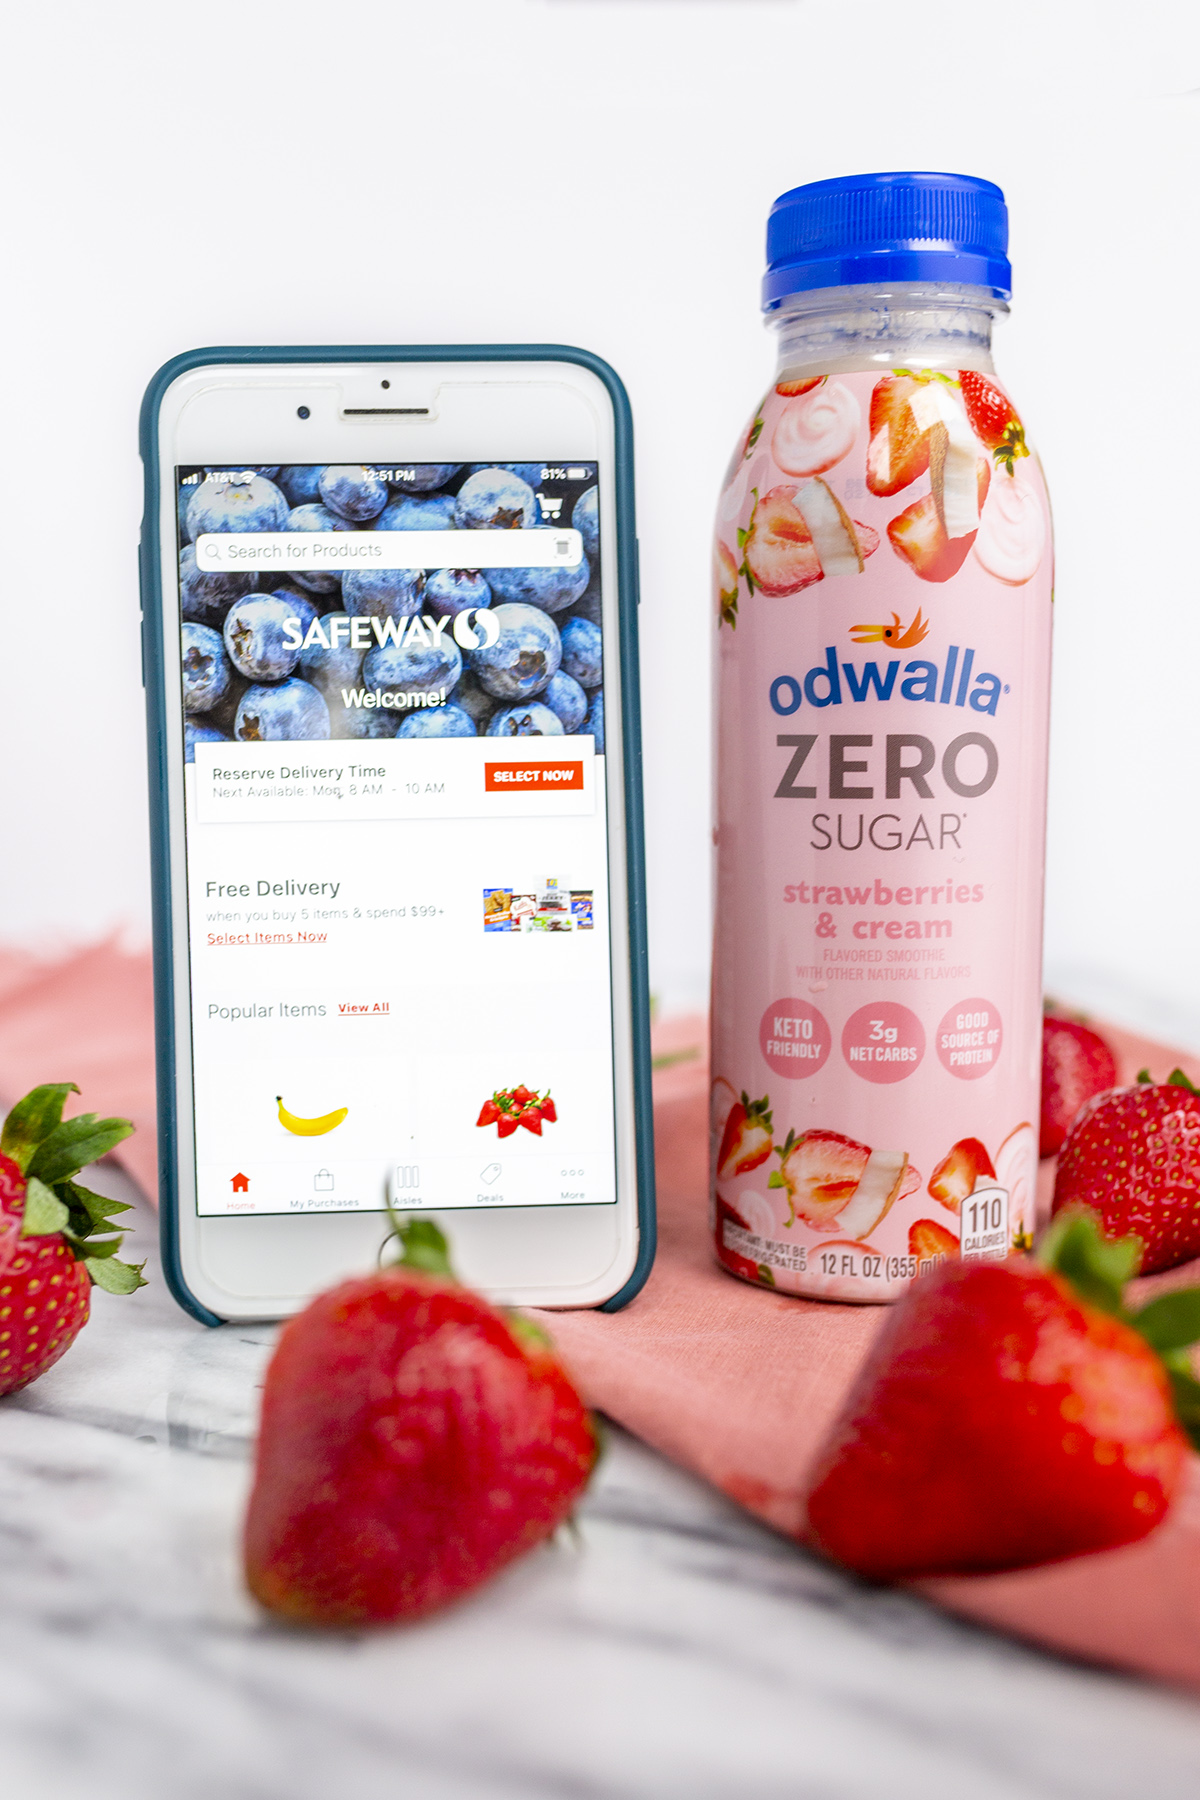 Odwalla Zero Sugar smoothie available at Safeway